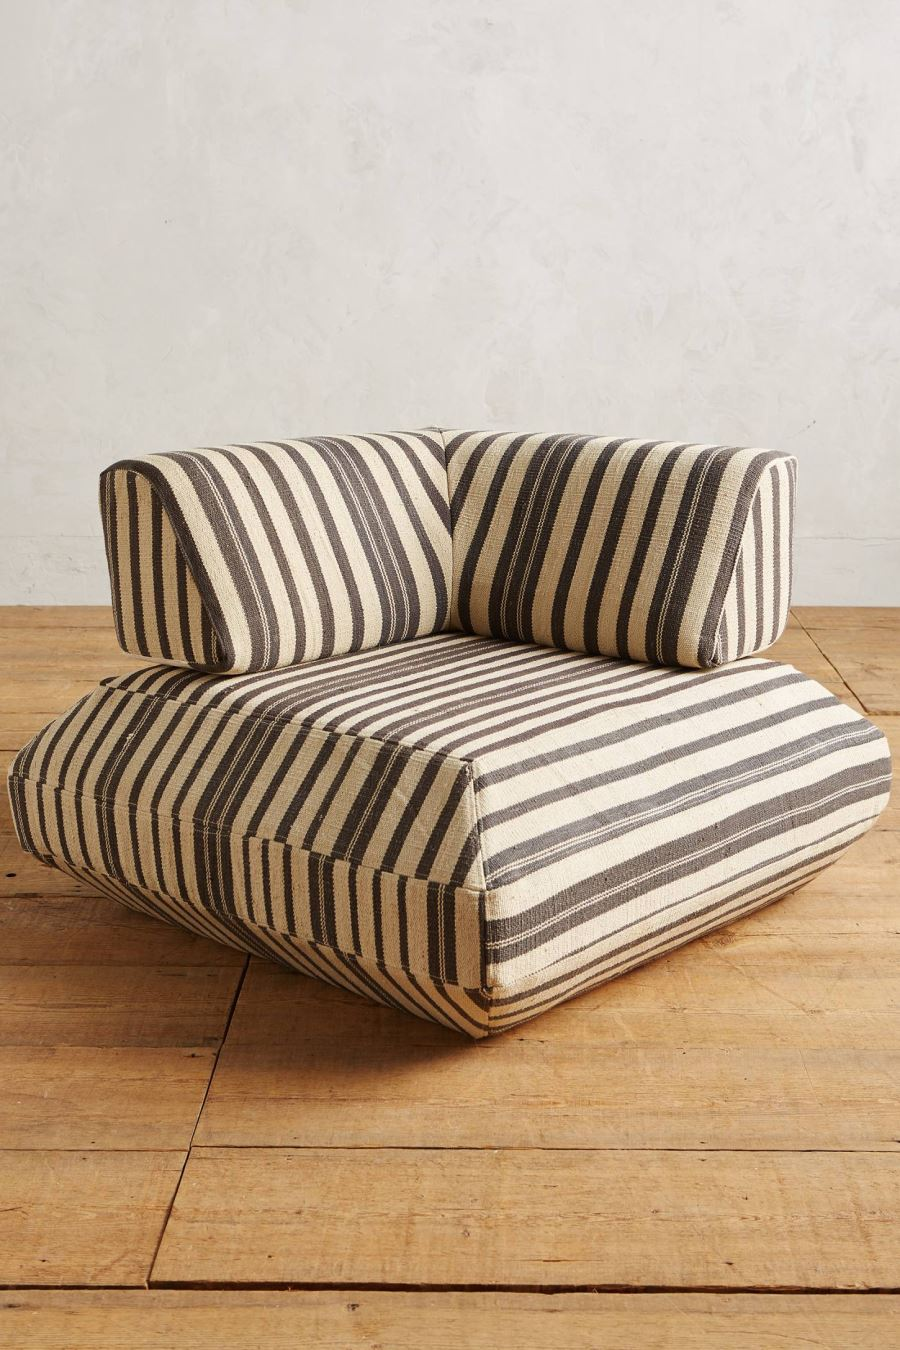 Striped modular corner chair from Anthropologie